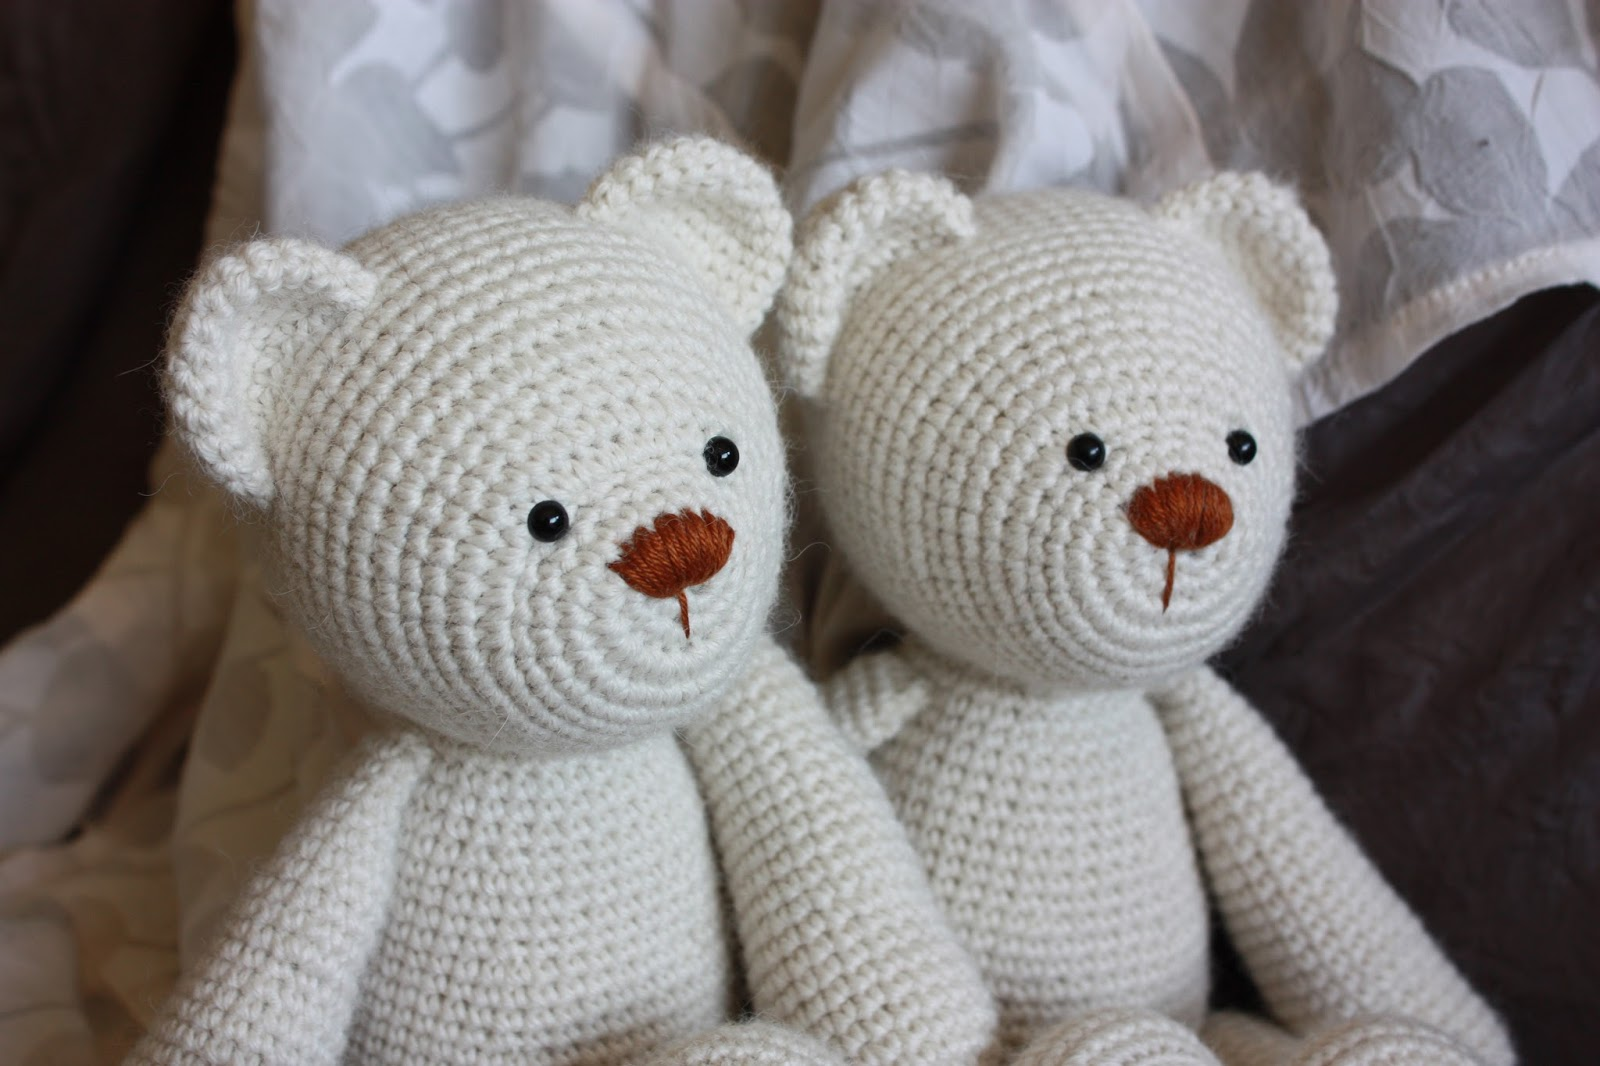 Free Crochet Patterns For Teddy Bear Sweaters : Happyamigurumi: Lucas the Teddy Bear Pattern: New Teddy ...